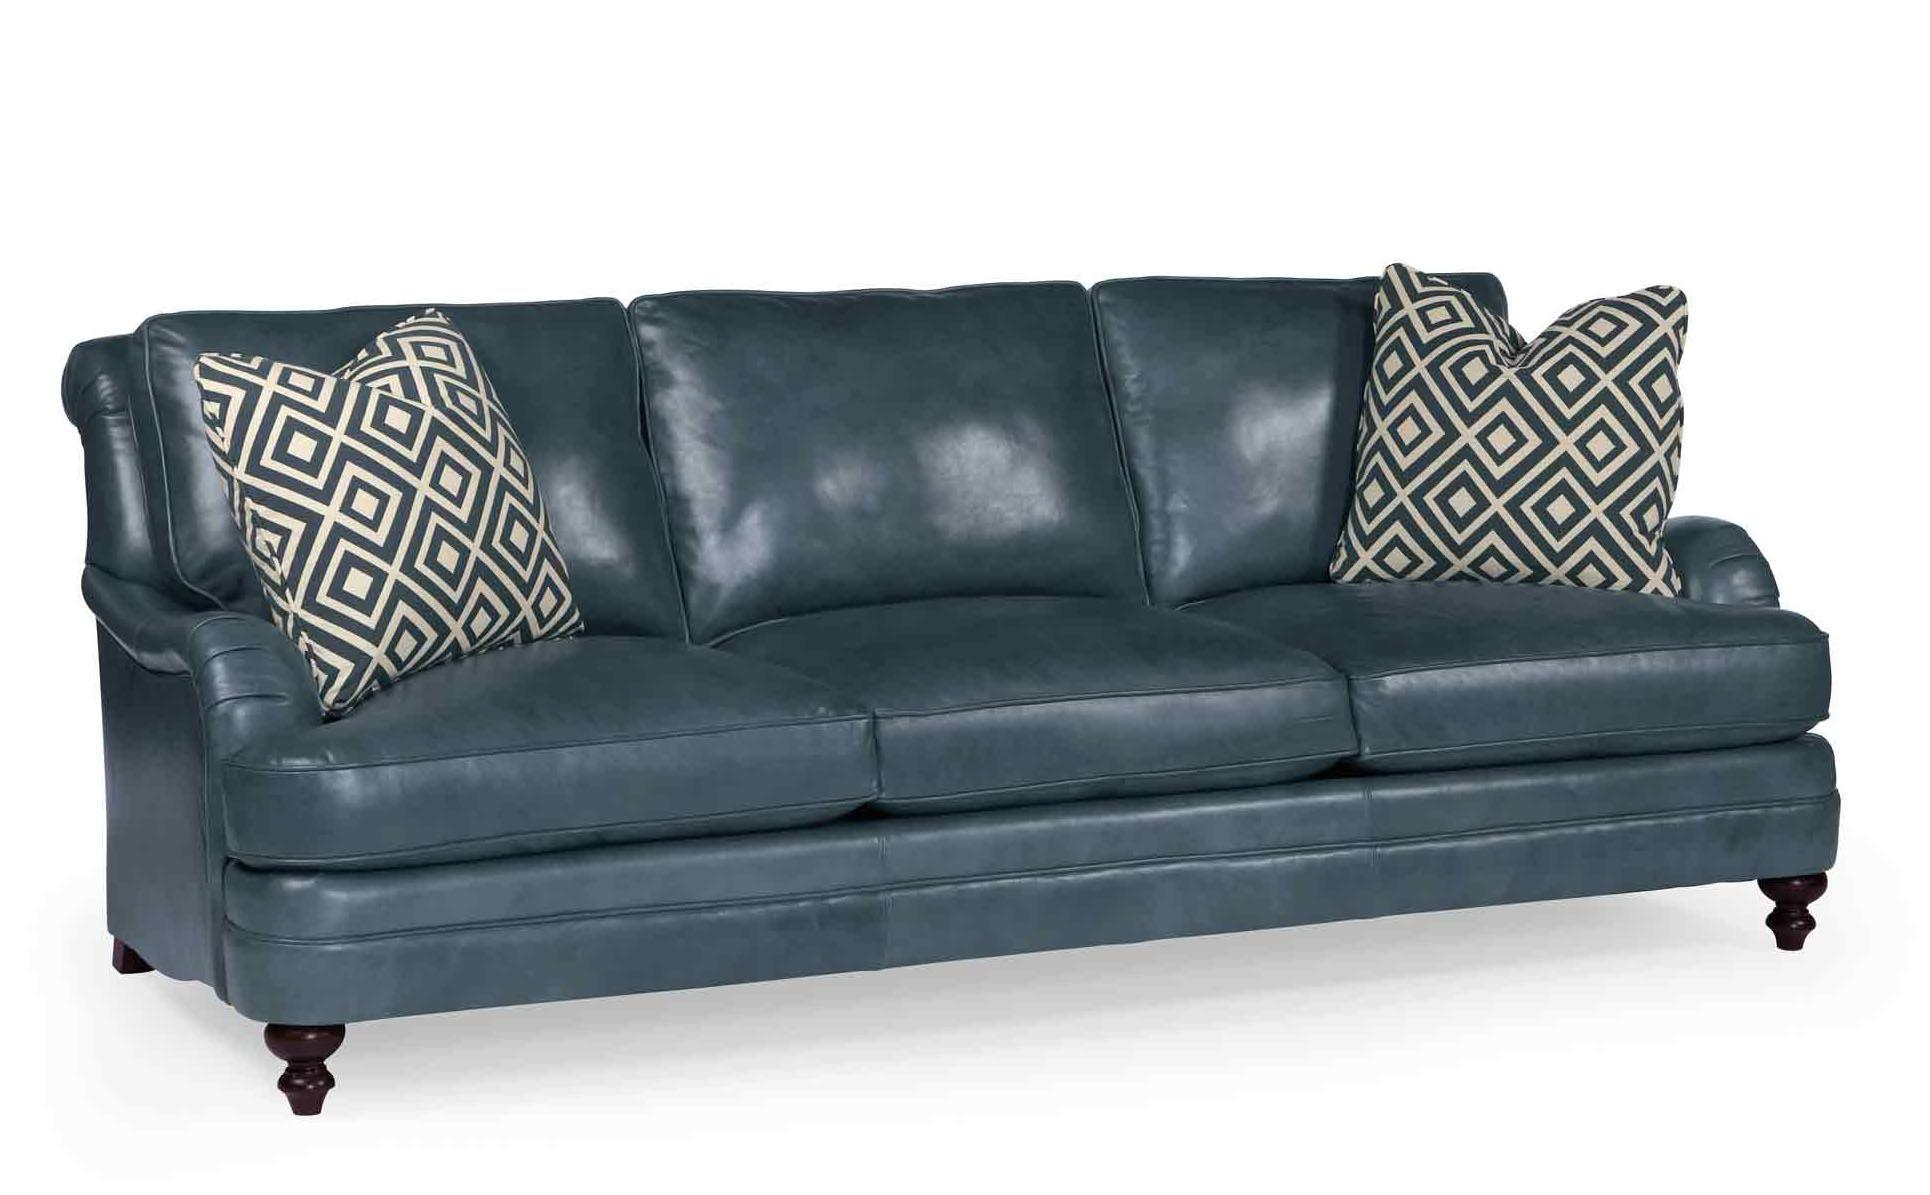 Mahogany and More Seating - Aleah Blue Genuine Leather Sofa